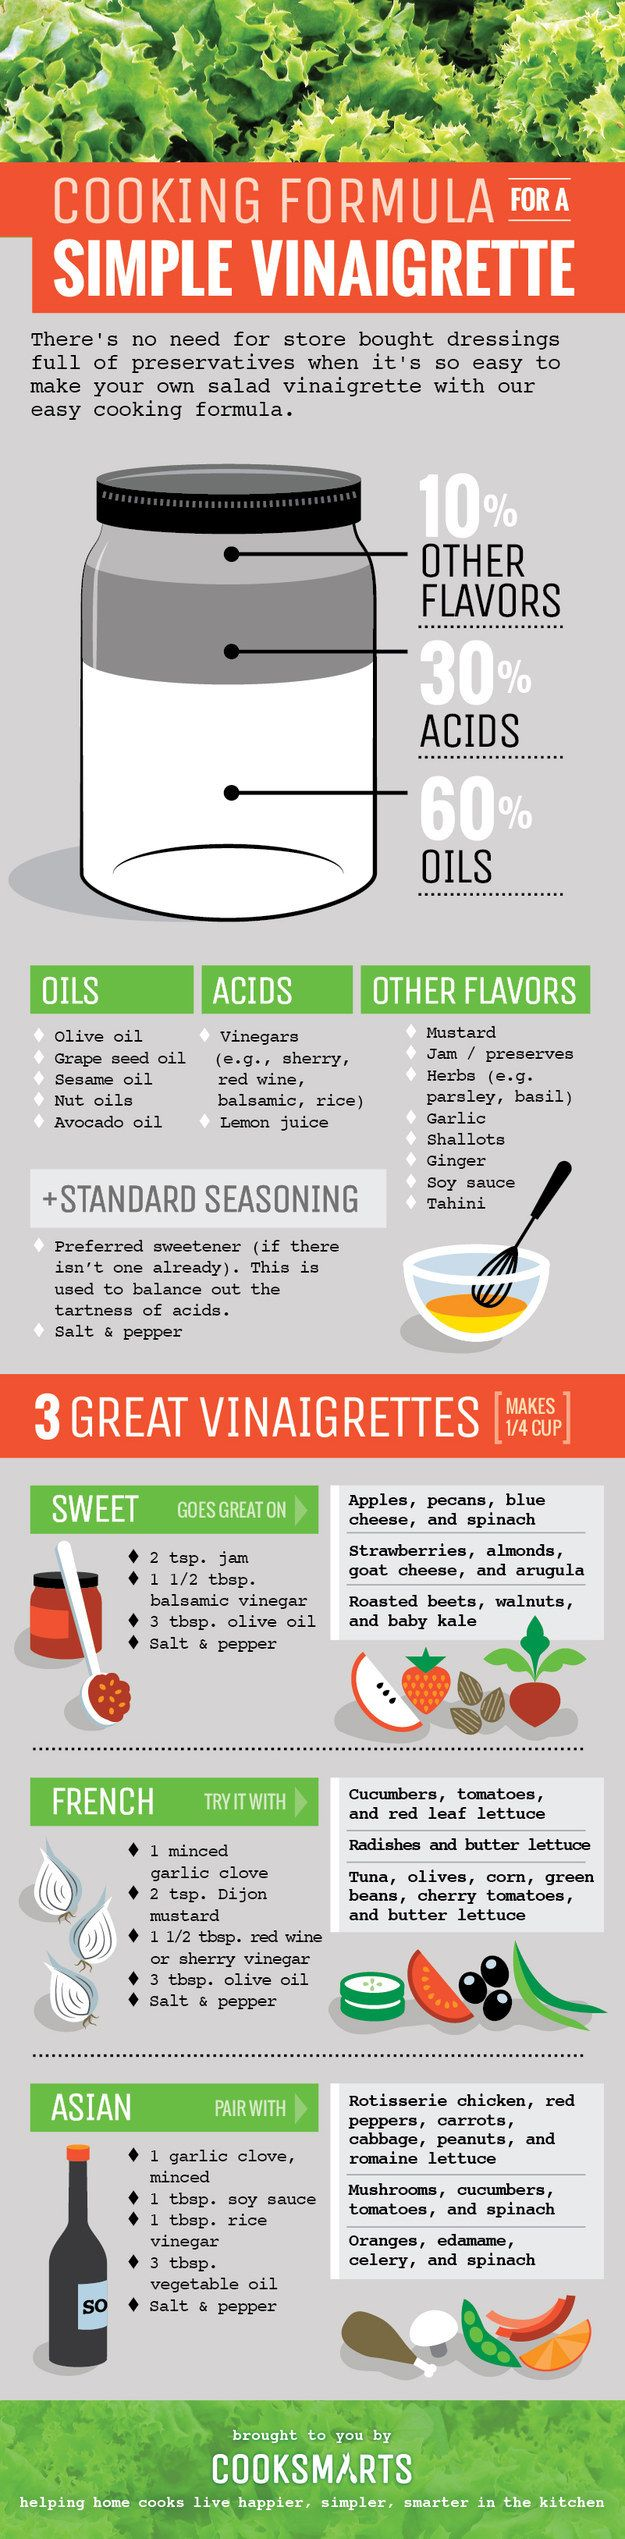 For making your own vinaigrette. | 27 Diagrams That Make Cooking So Much Easier